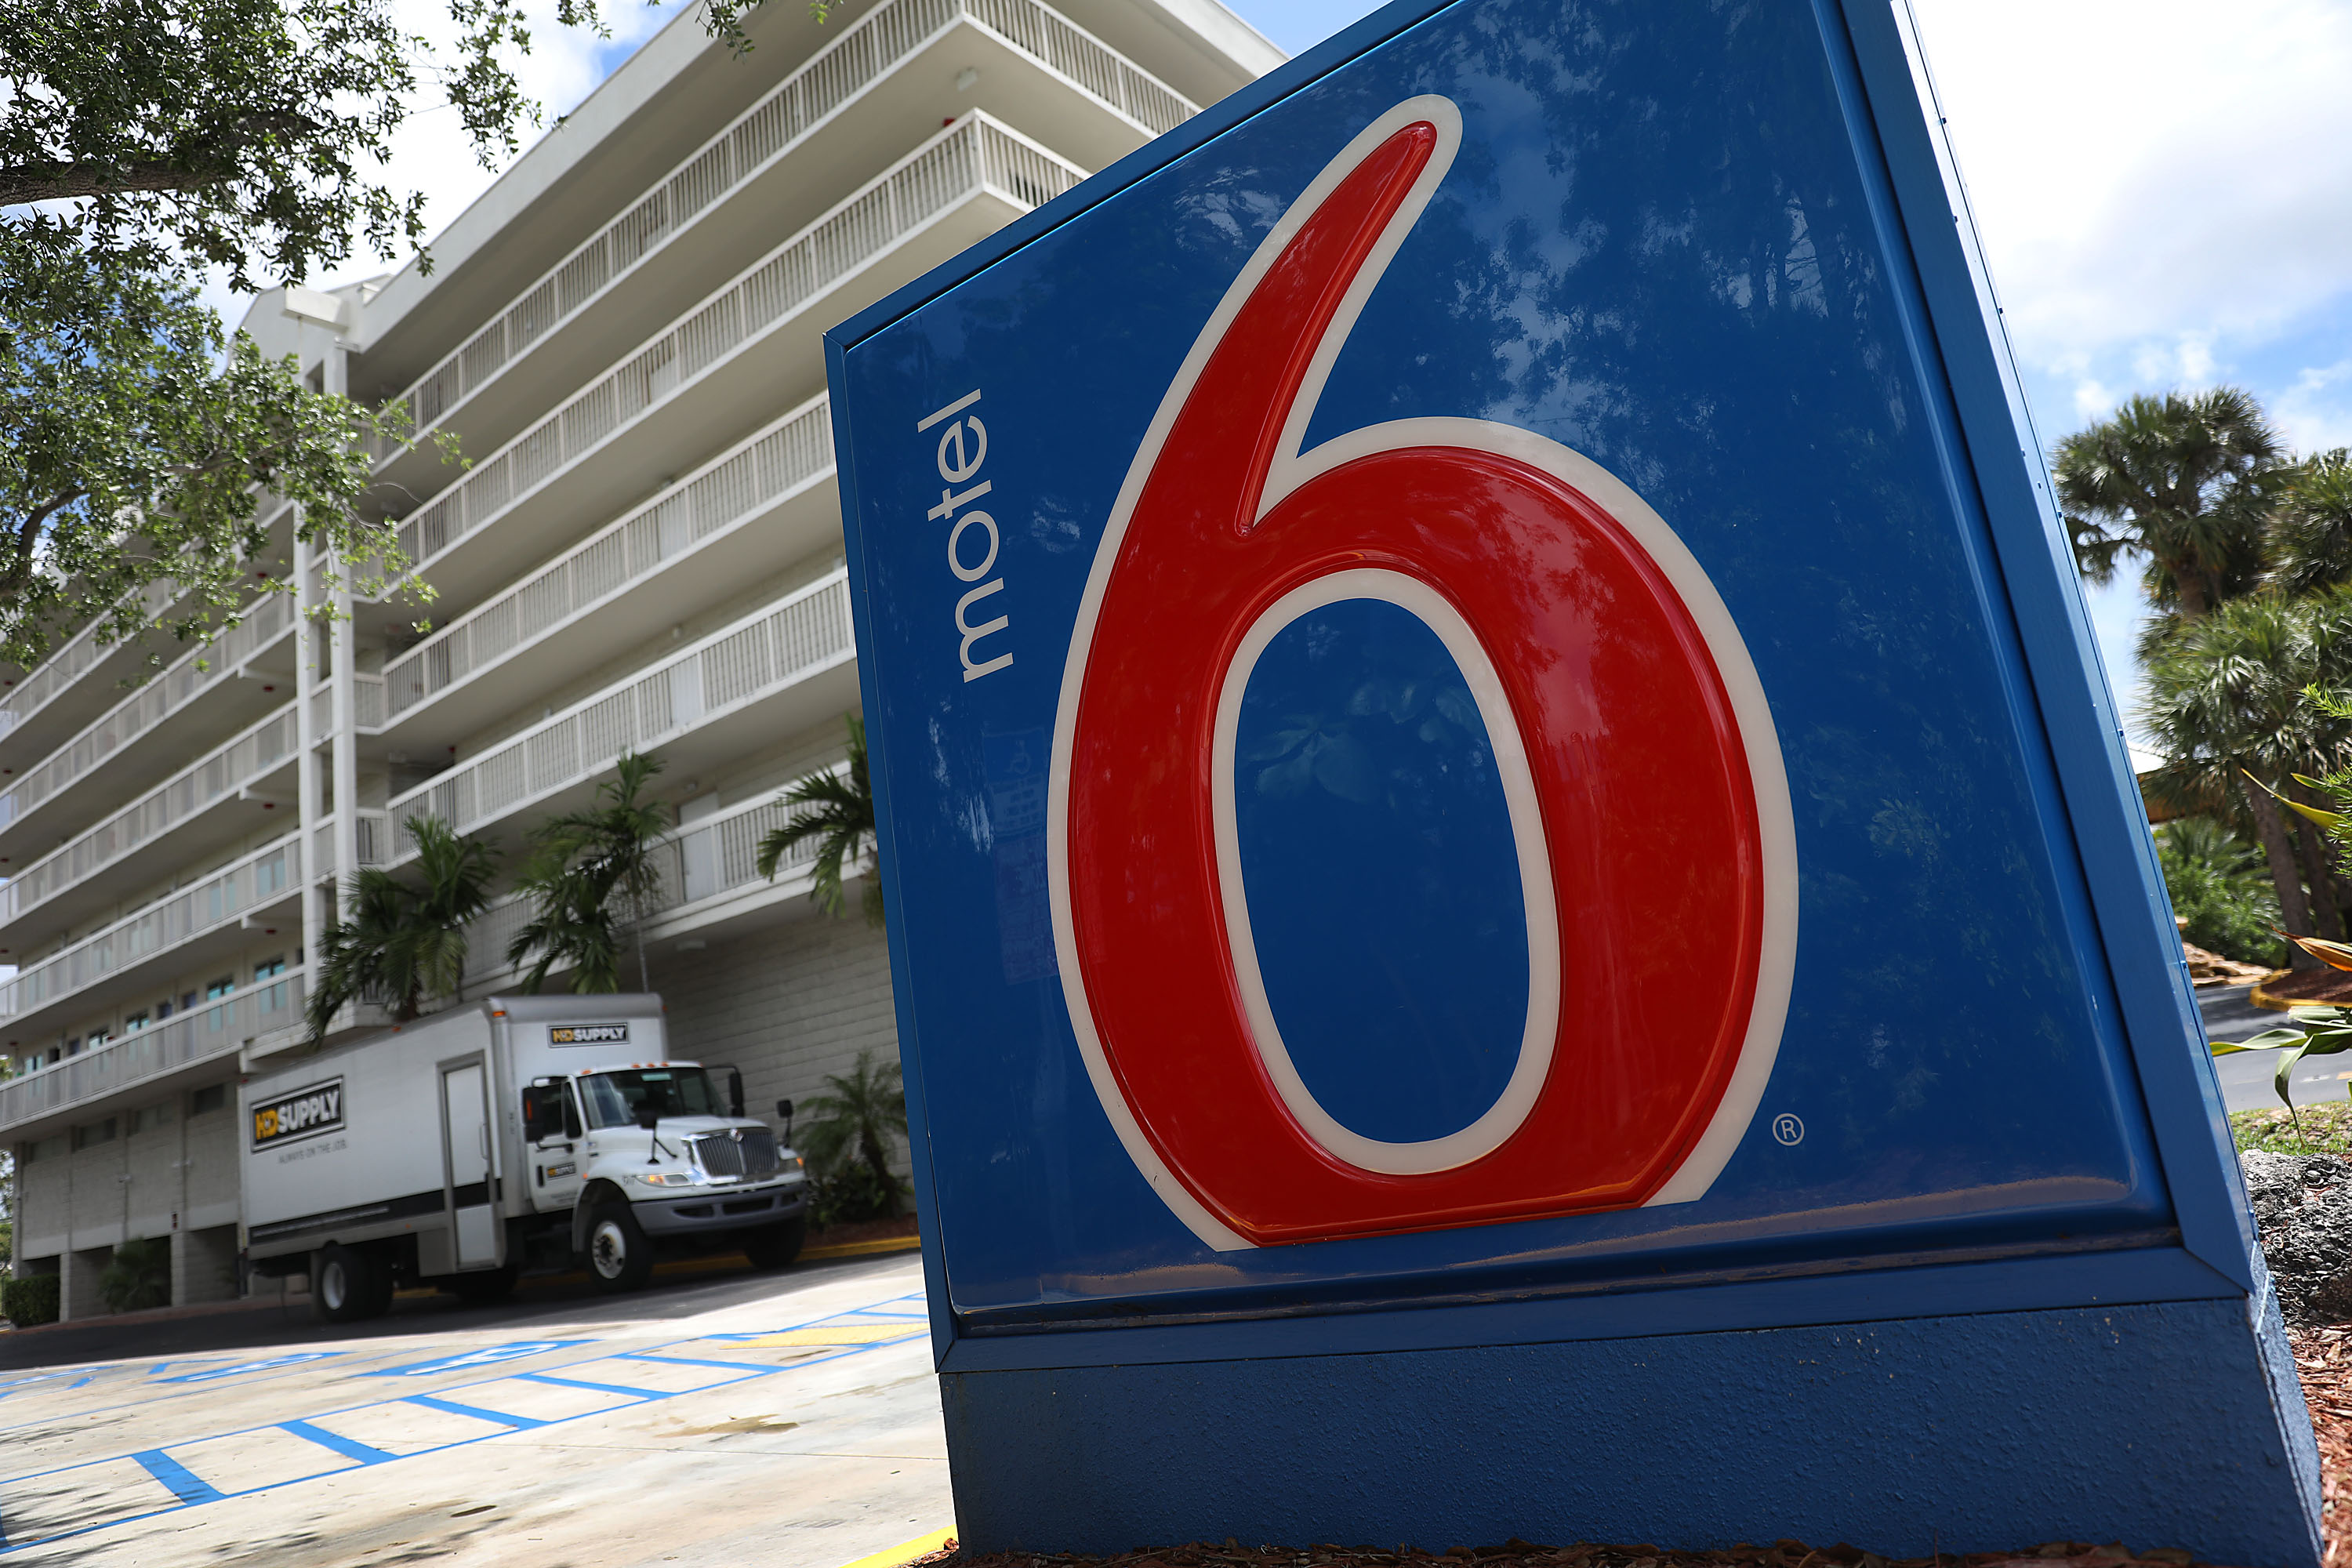 Motel 6 Will Pay $12 Million Settlement After Sharing Guest Information With ICE